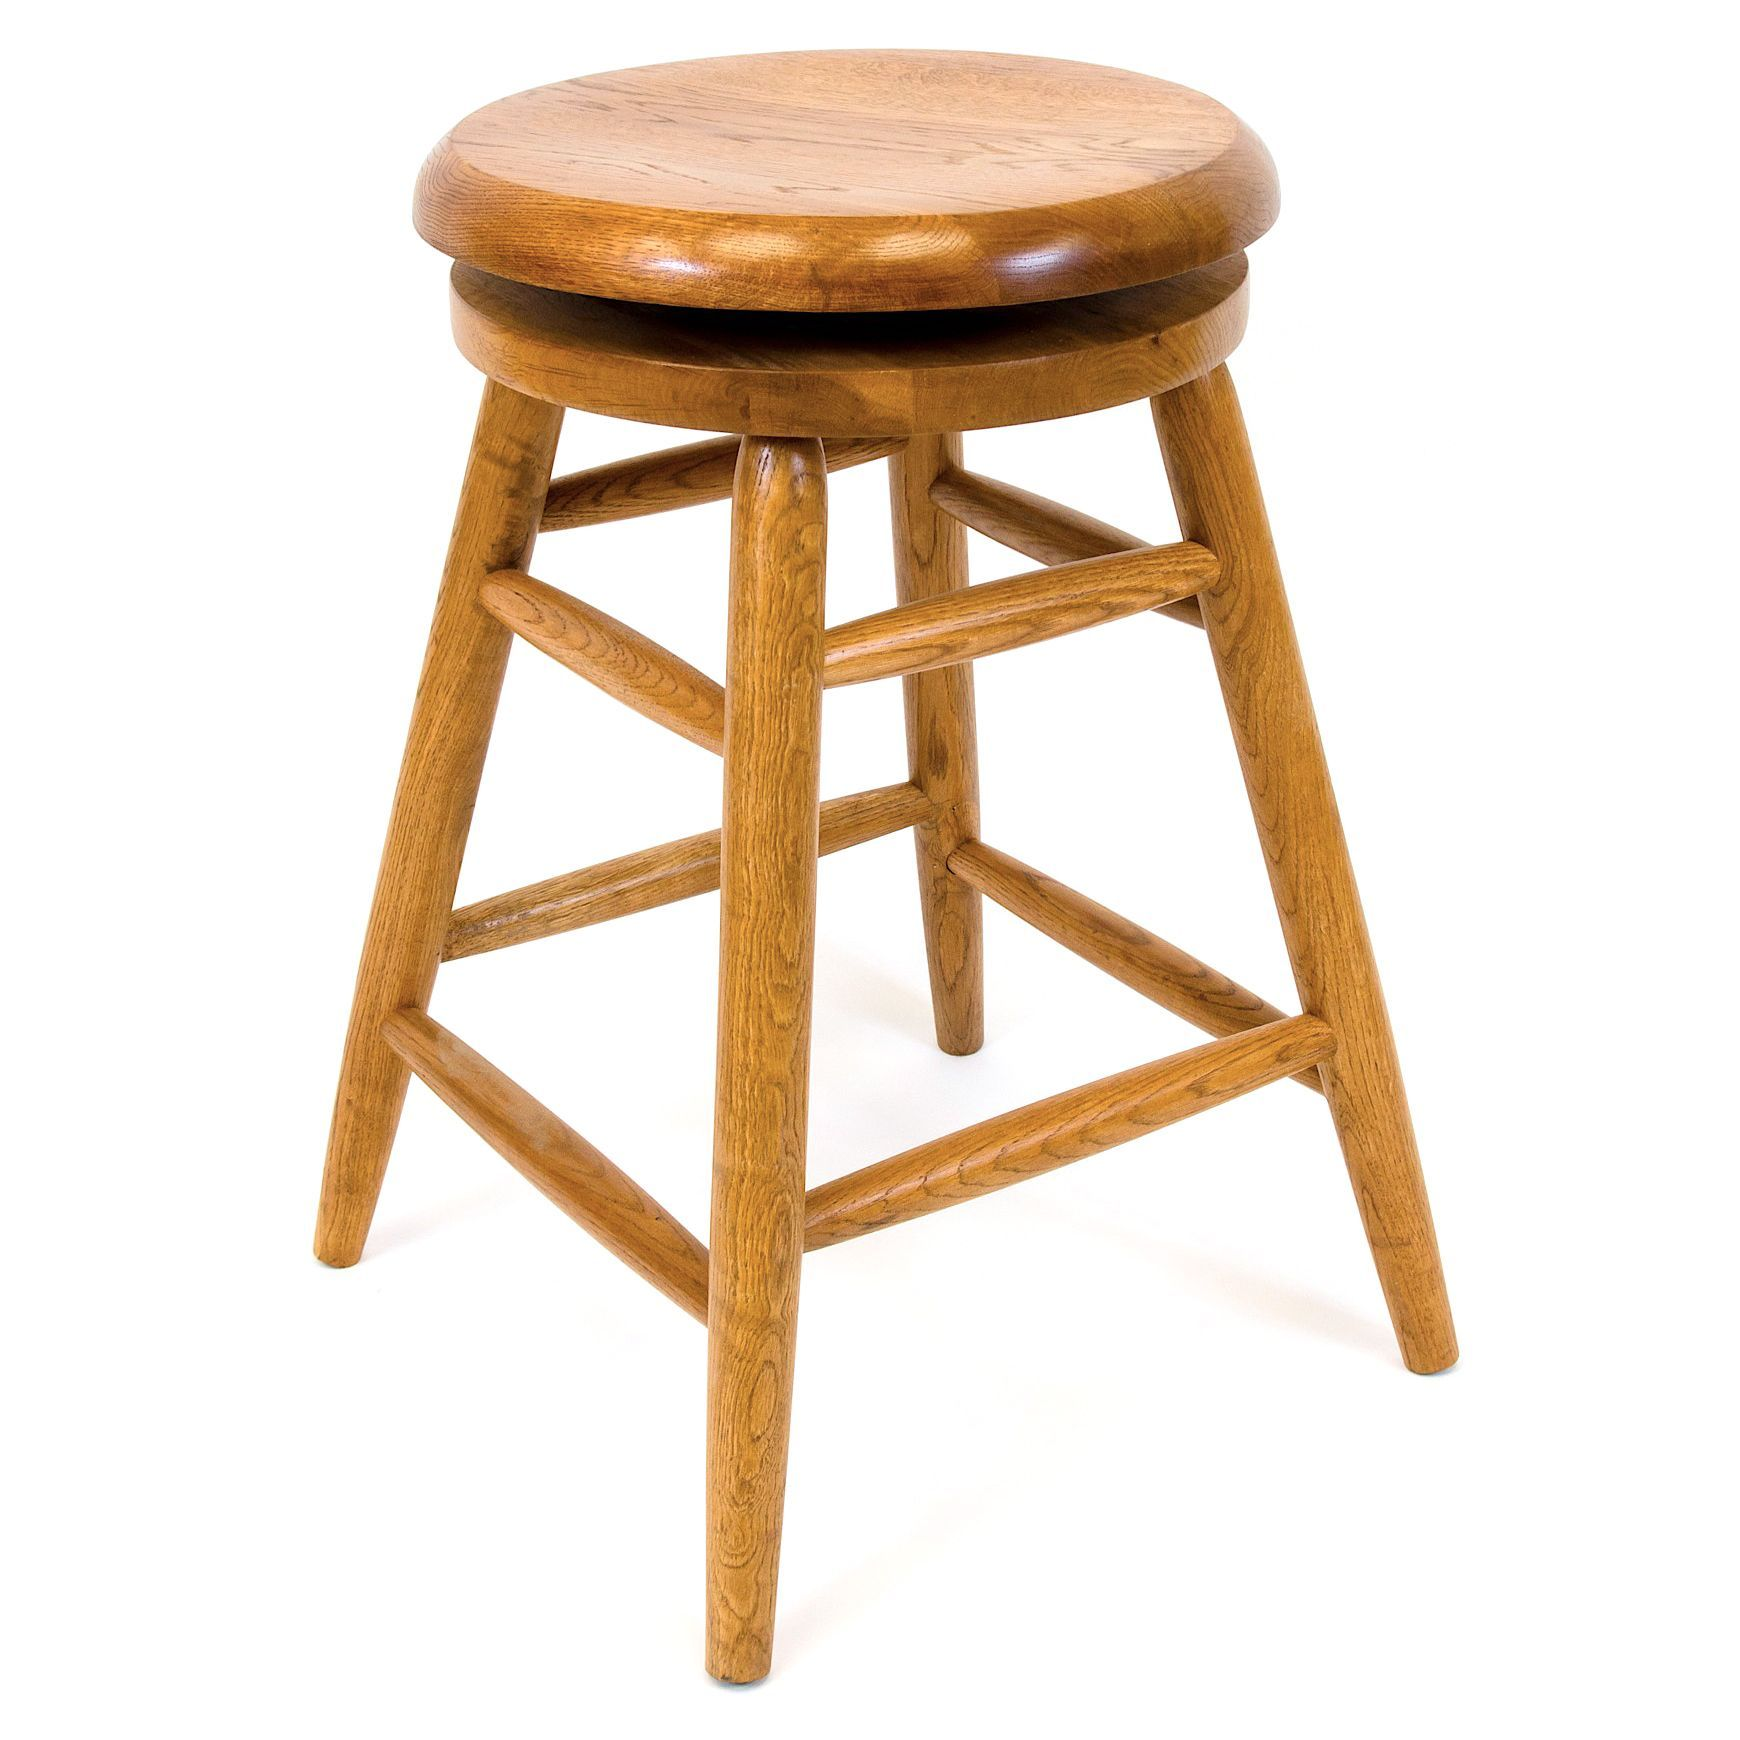 These Wooden 24 Inch Counter Stools Turn Your Kitchen Counter Into Extra  Dining Space Or A Family Gathering Place. Each Sturdy Stool Swivels 360  Degrees, ...